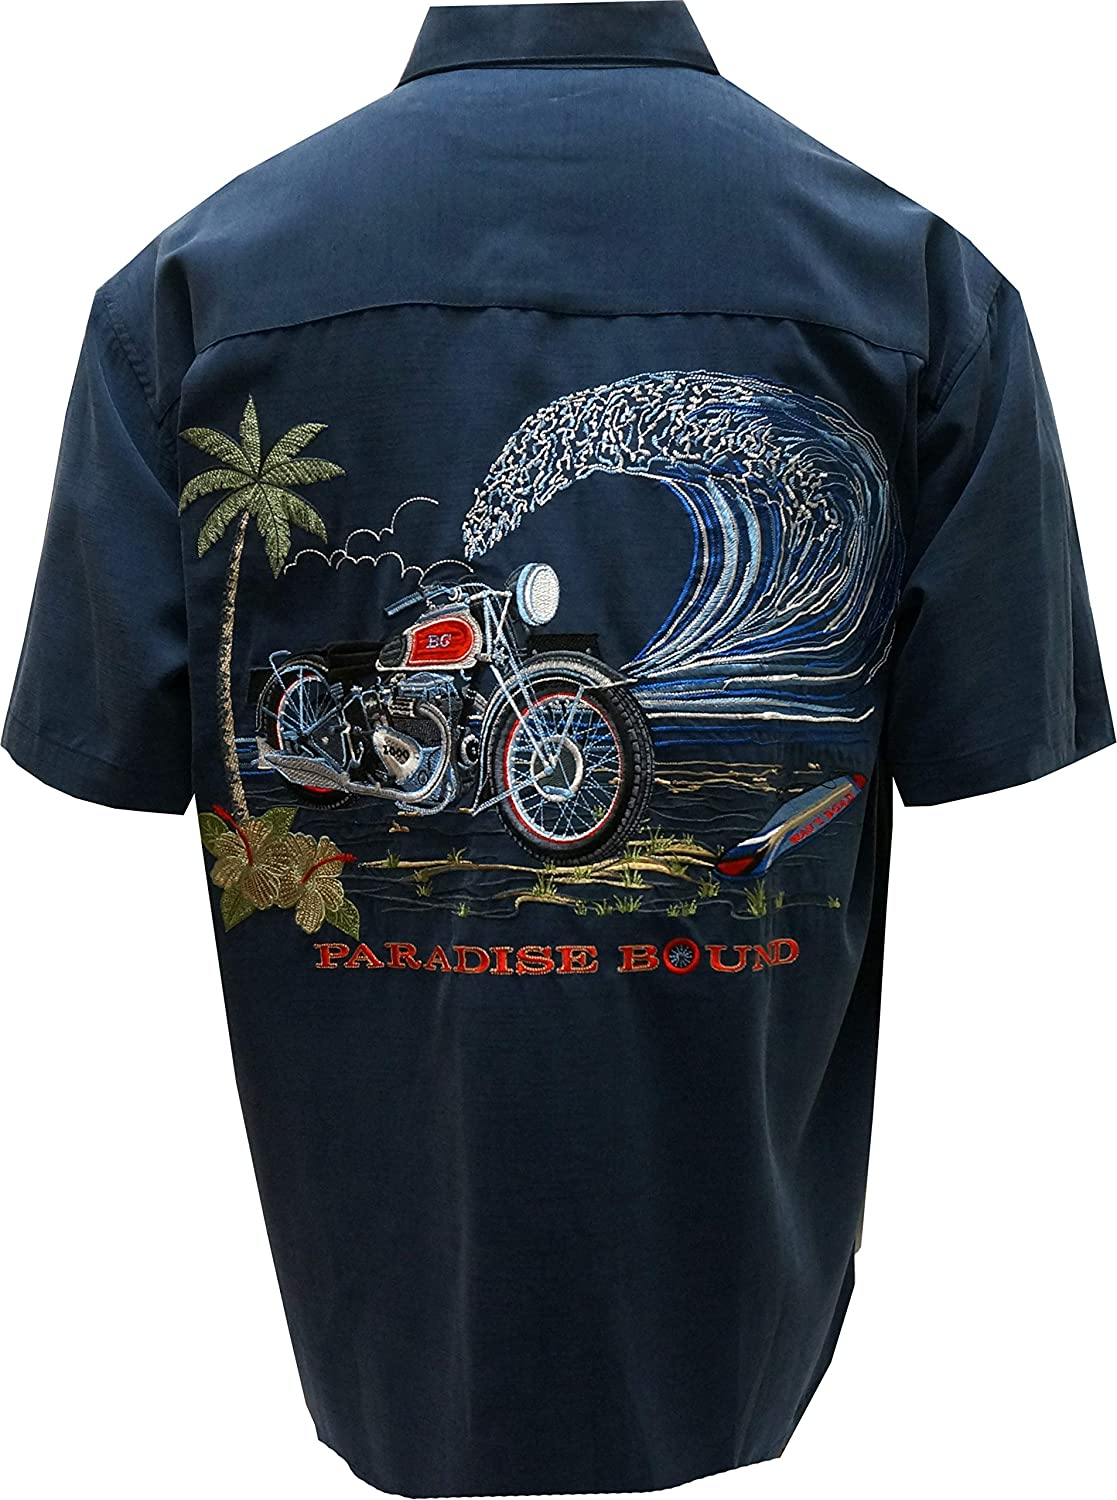 Bamboo Cay Mens Short Sleeve Paradise Bound Casual Embroidered Woven Shirt